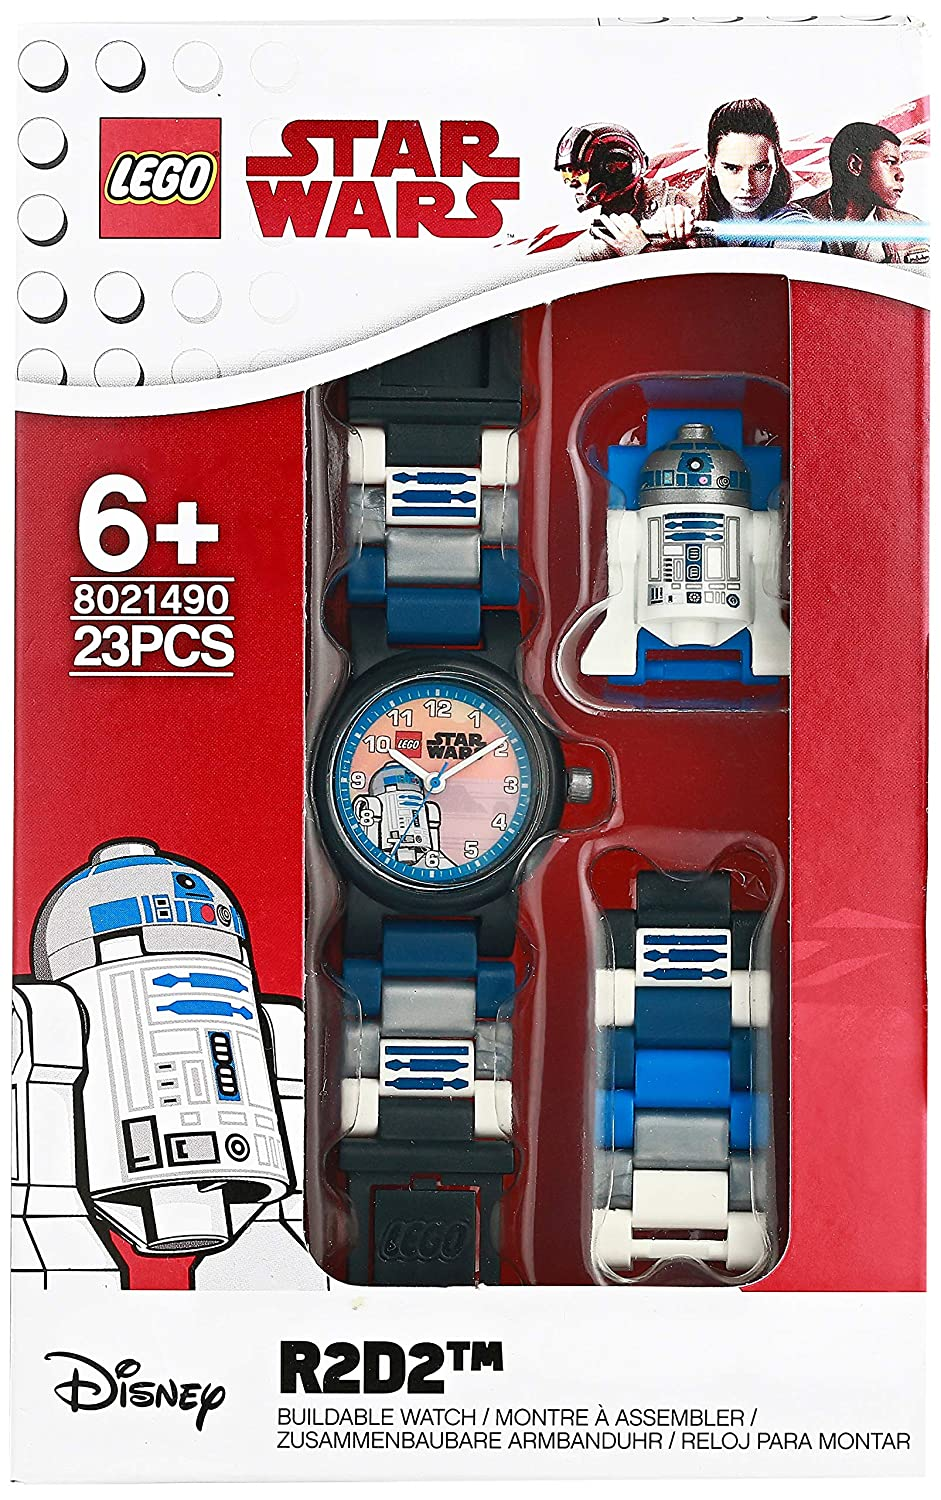 Amazon.com: LEGO Watches and Clocks Boys Star Wars R2D2 Quartz Plastic Casual watch, Color:Blue (Model: 8021490): Watches